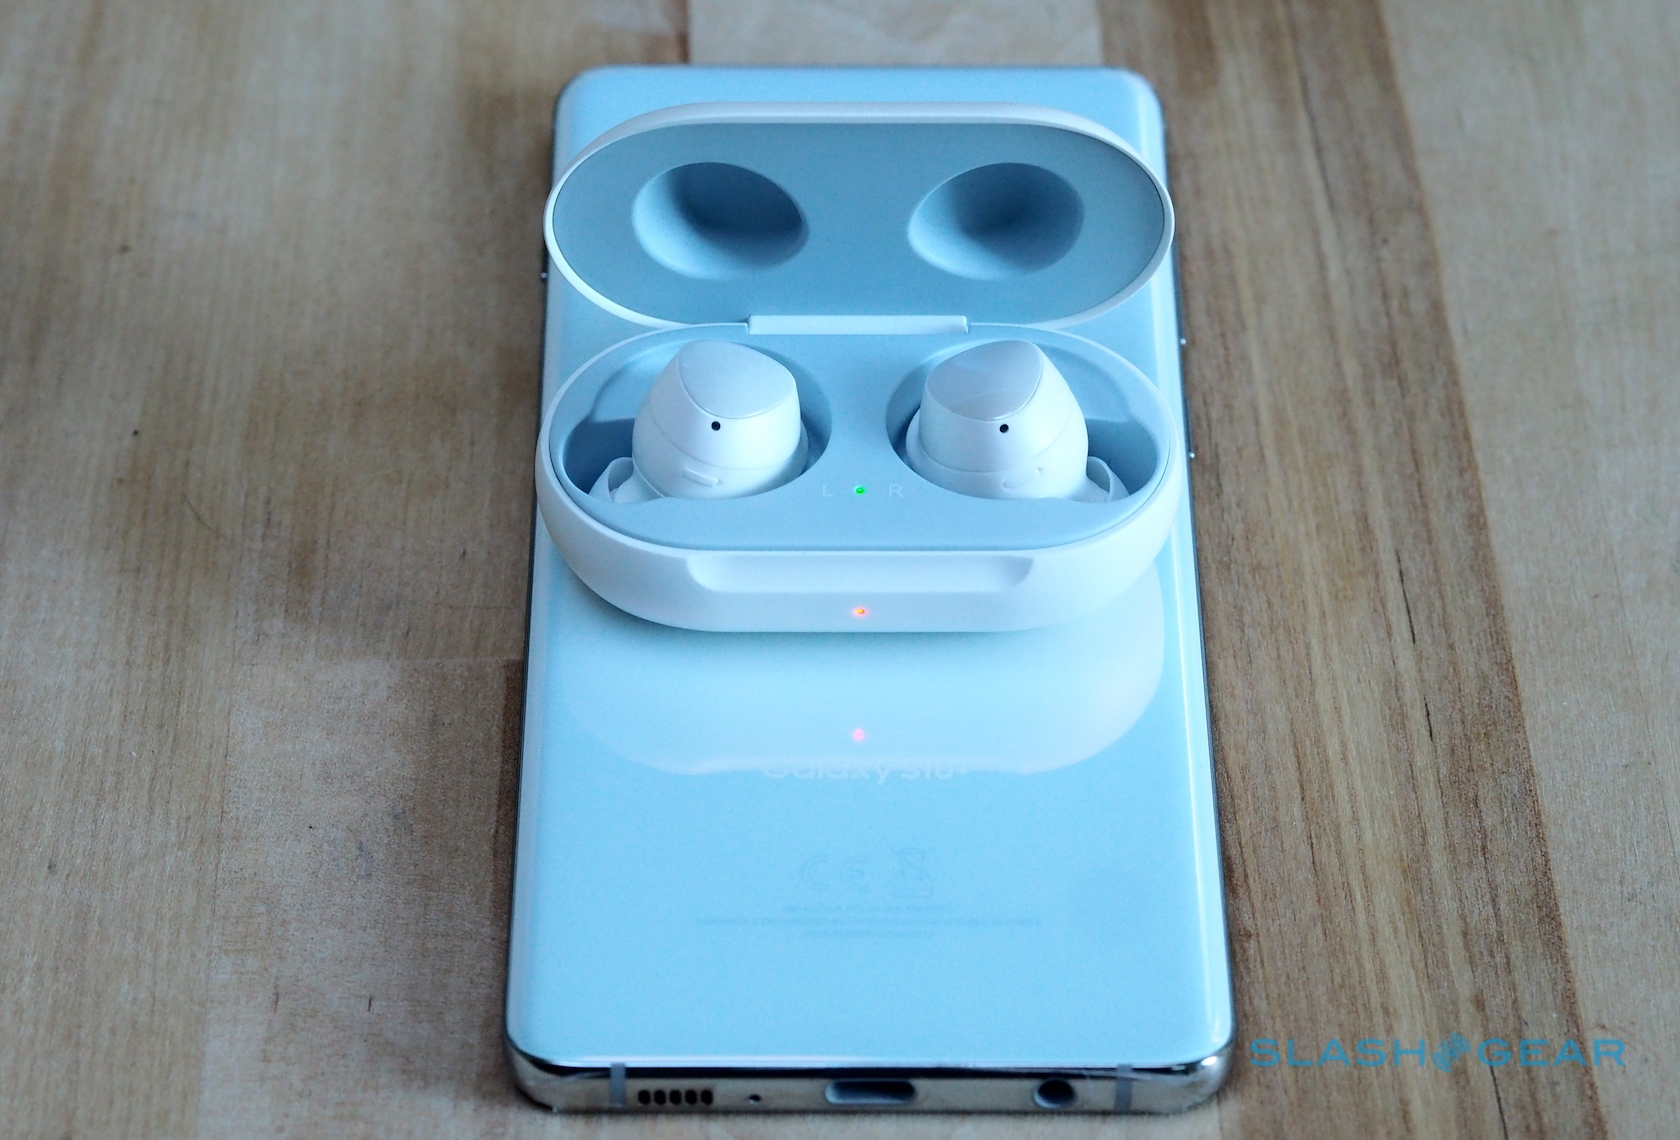 Wireless Phone Samsung Galaxy Buds Gallery - Slashgear